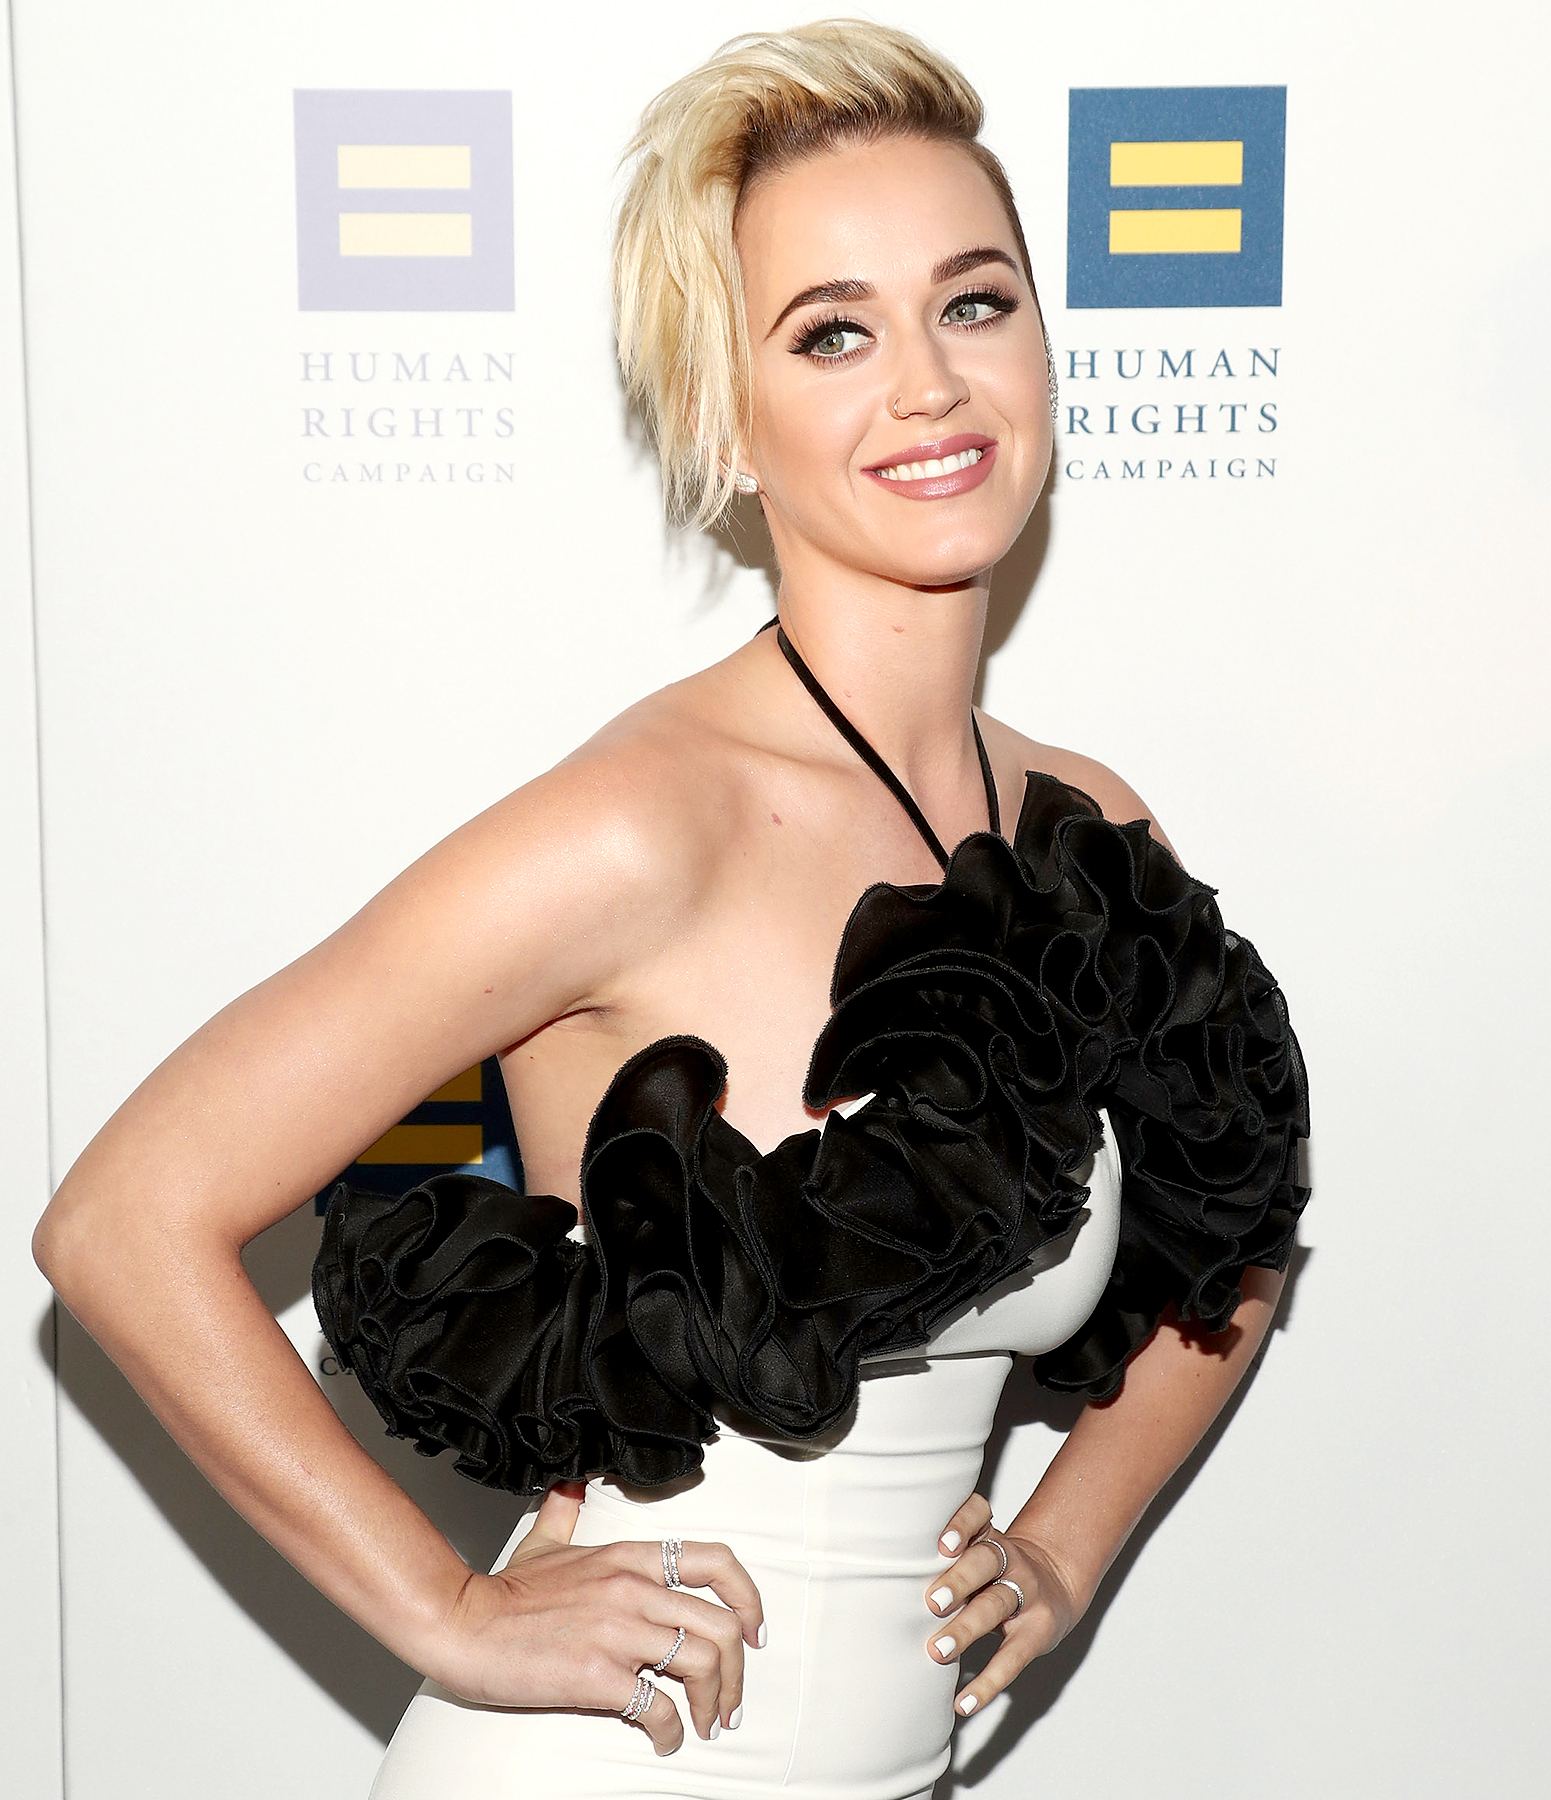 Katy Perry attends the Human Rights Campaign's 2017 Los Angeles Gala Dinner at JW Marriott Los Angeles at L.A. LIVE on March 18, 2017 in Los Angeles, California.